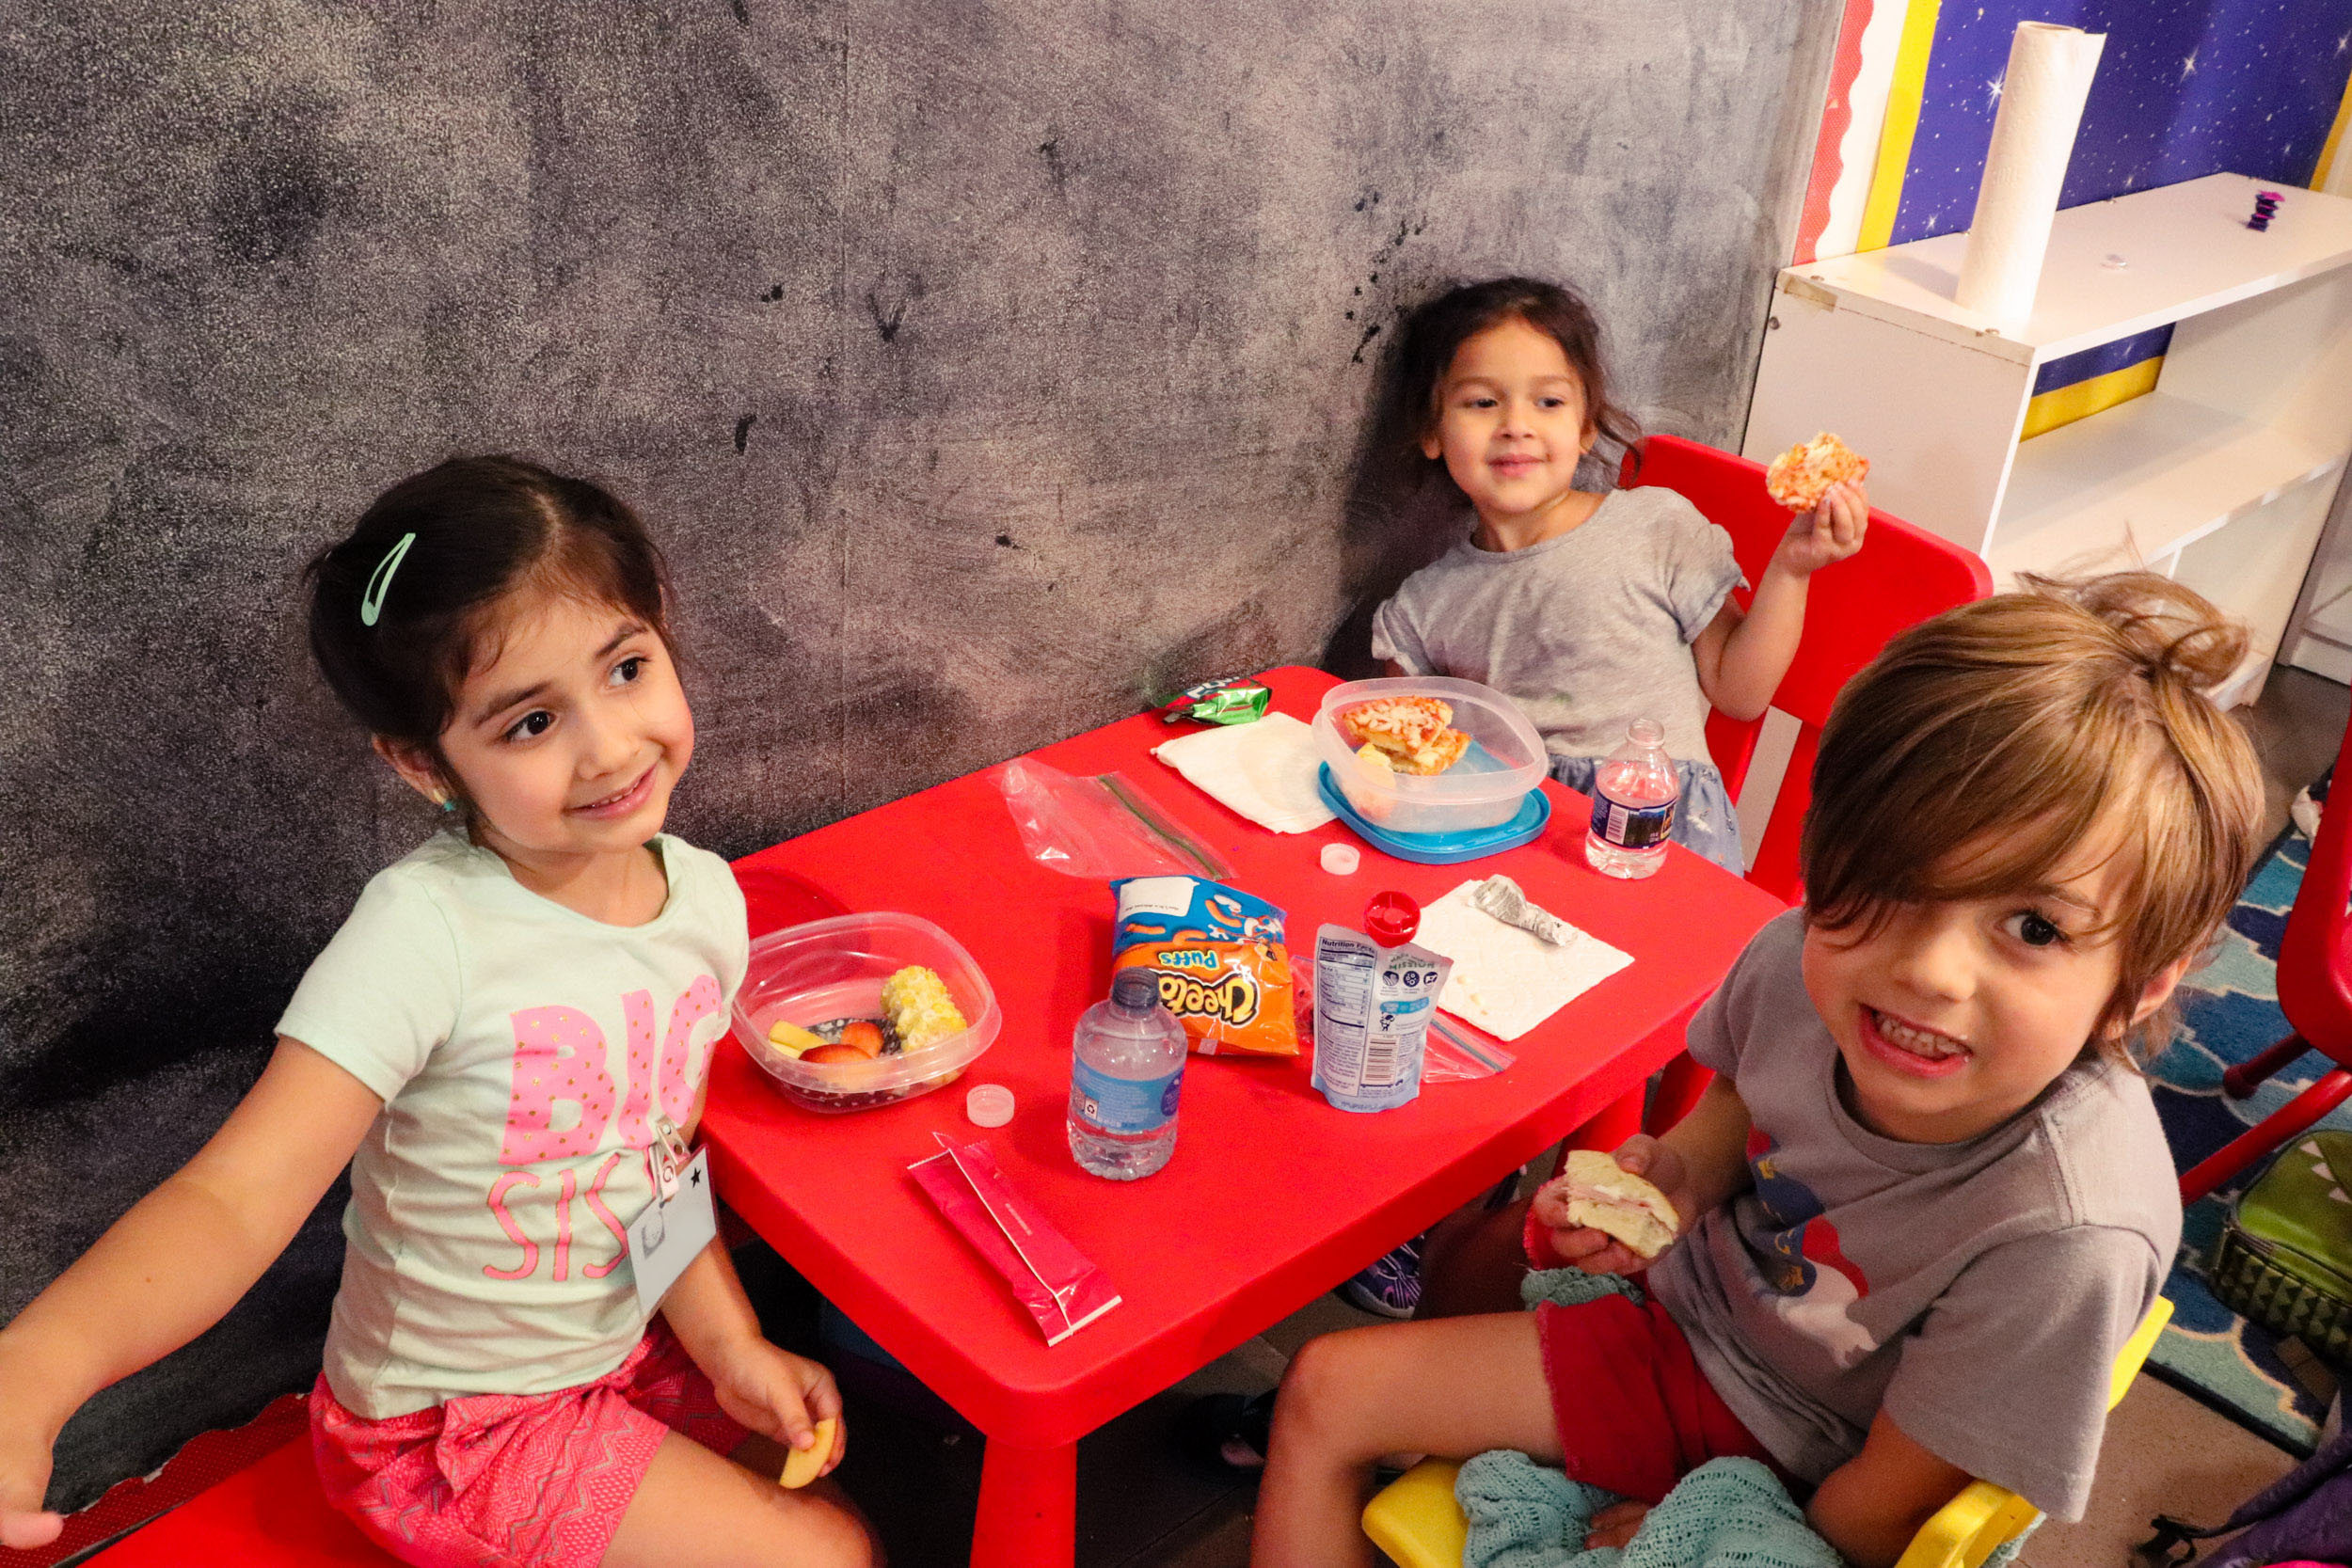 Three preschoolers eating lunch together around a red table, smiling.